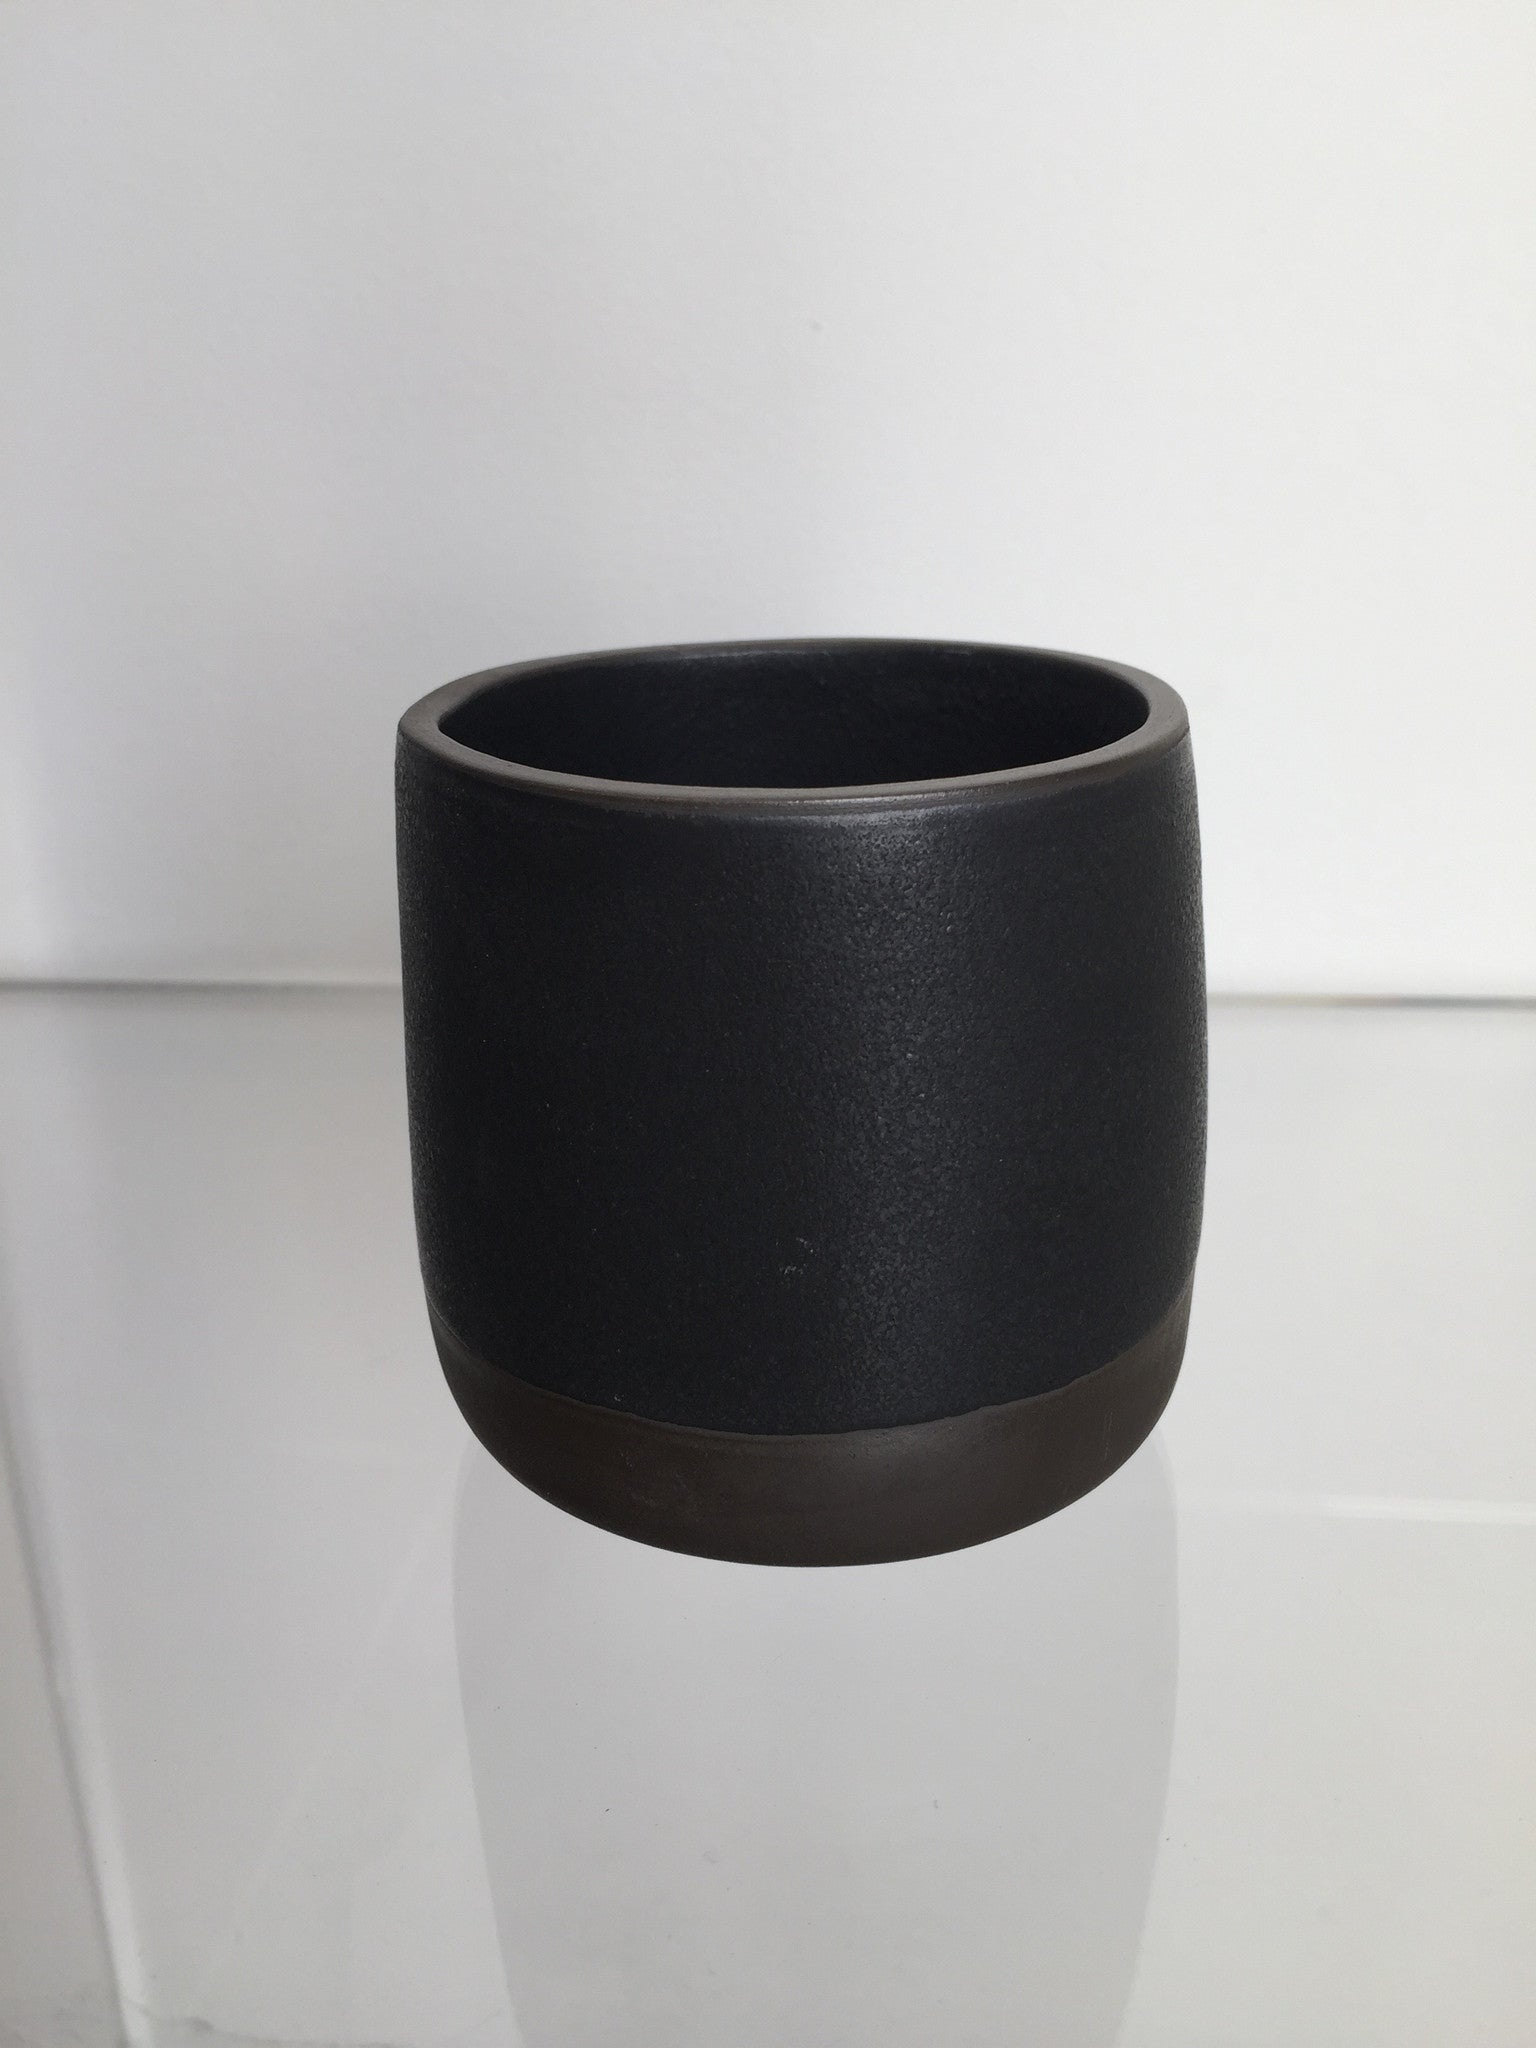 Robert Siegel Studio Black Porcelain Tumblers